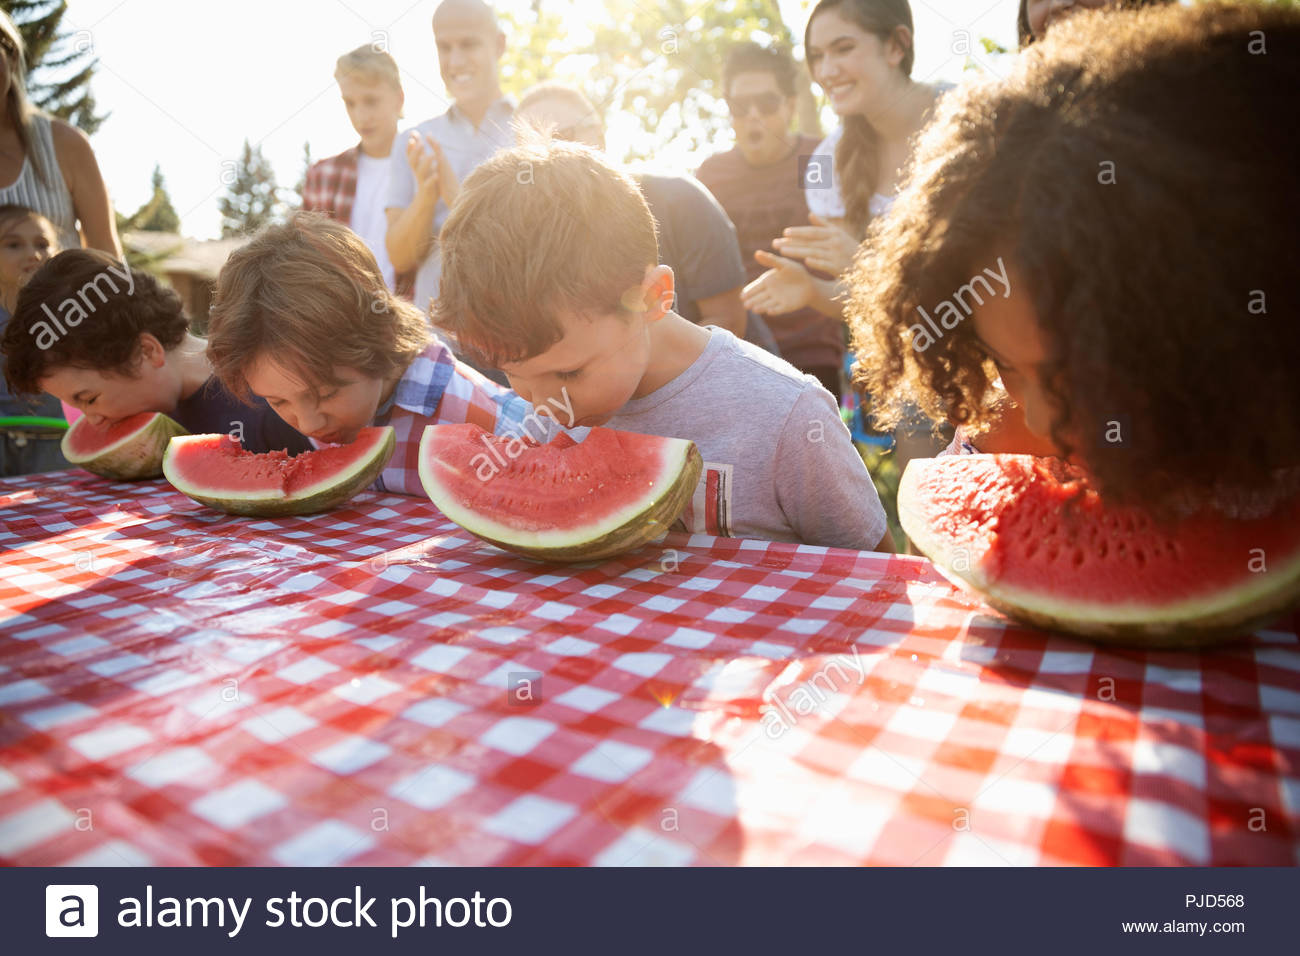 Kids enjoying watermelon eating contest at summer neighborhood block party in park - Stock Image